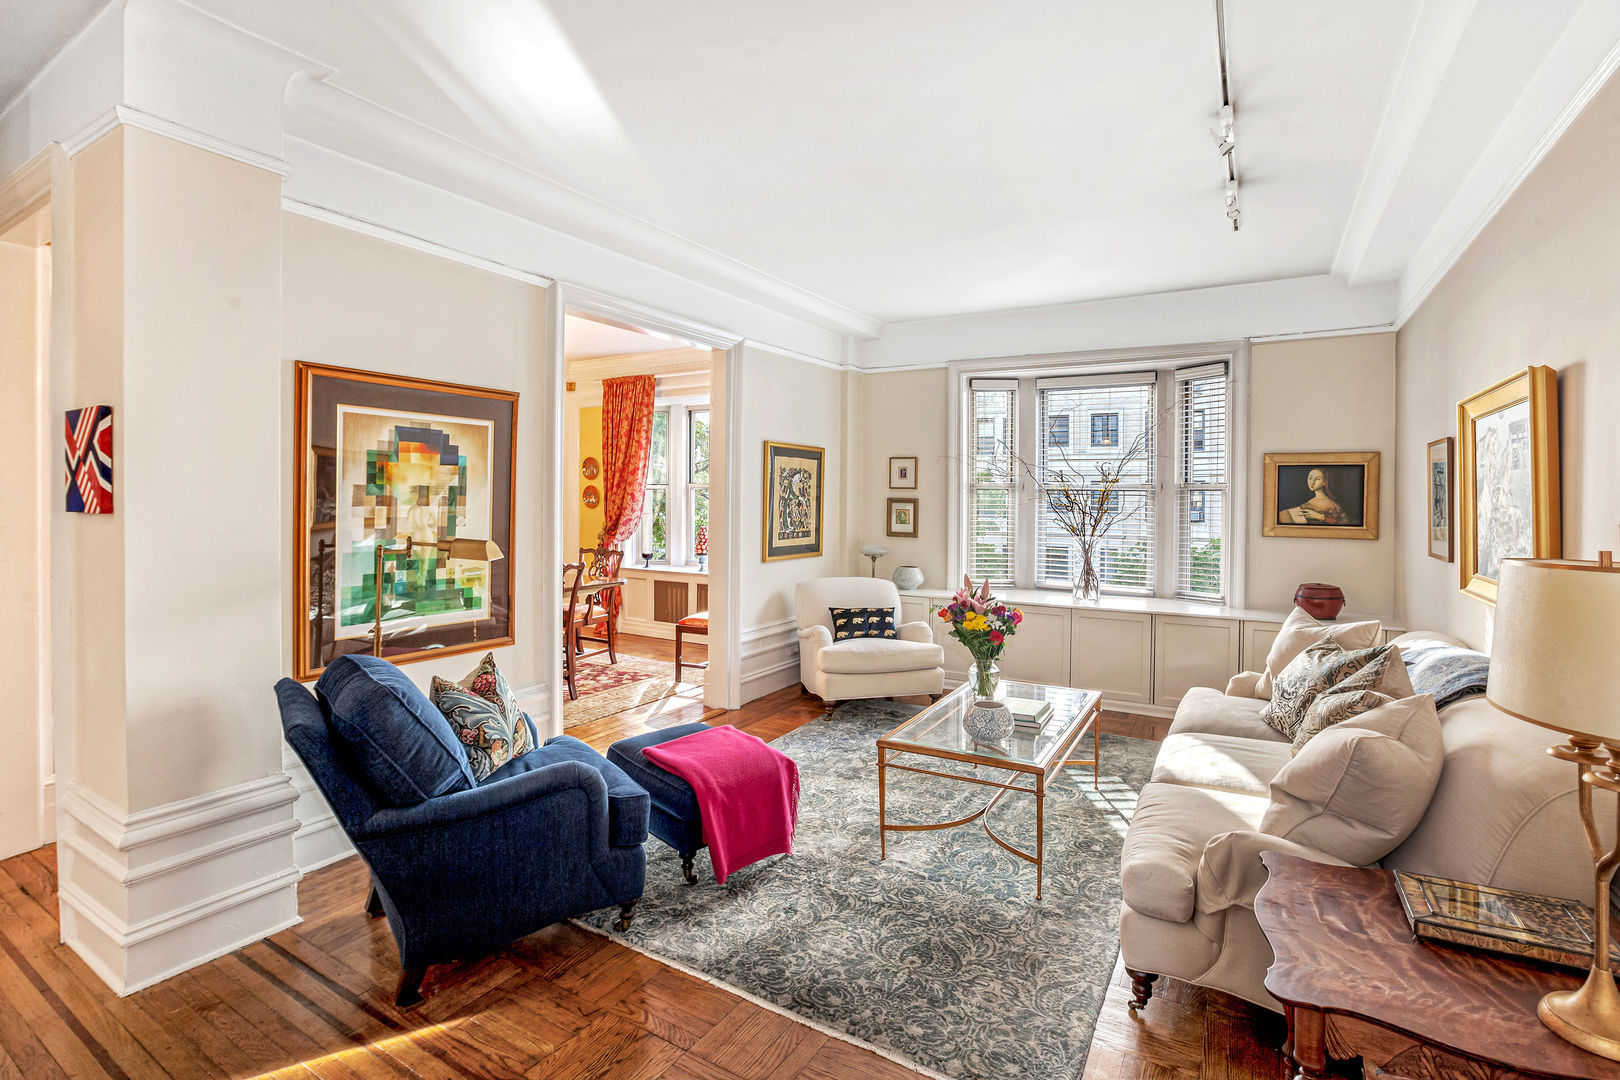 Apartment for sale at 520 West 110th Street, Apt 3C